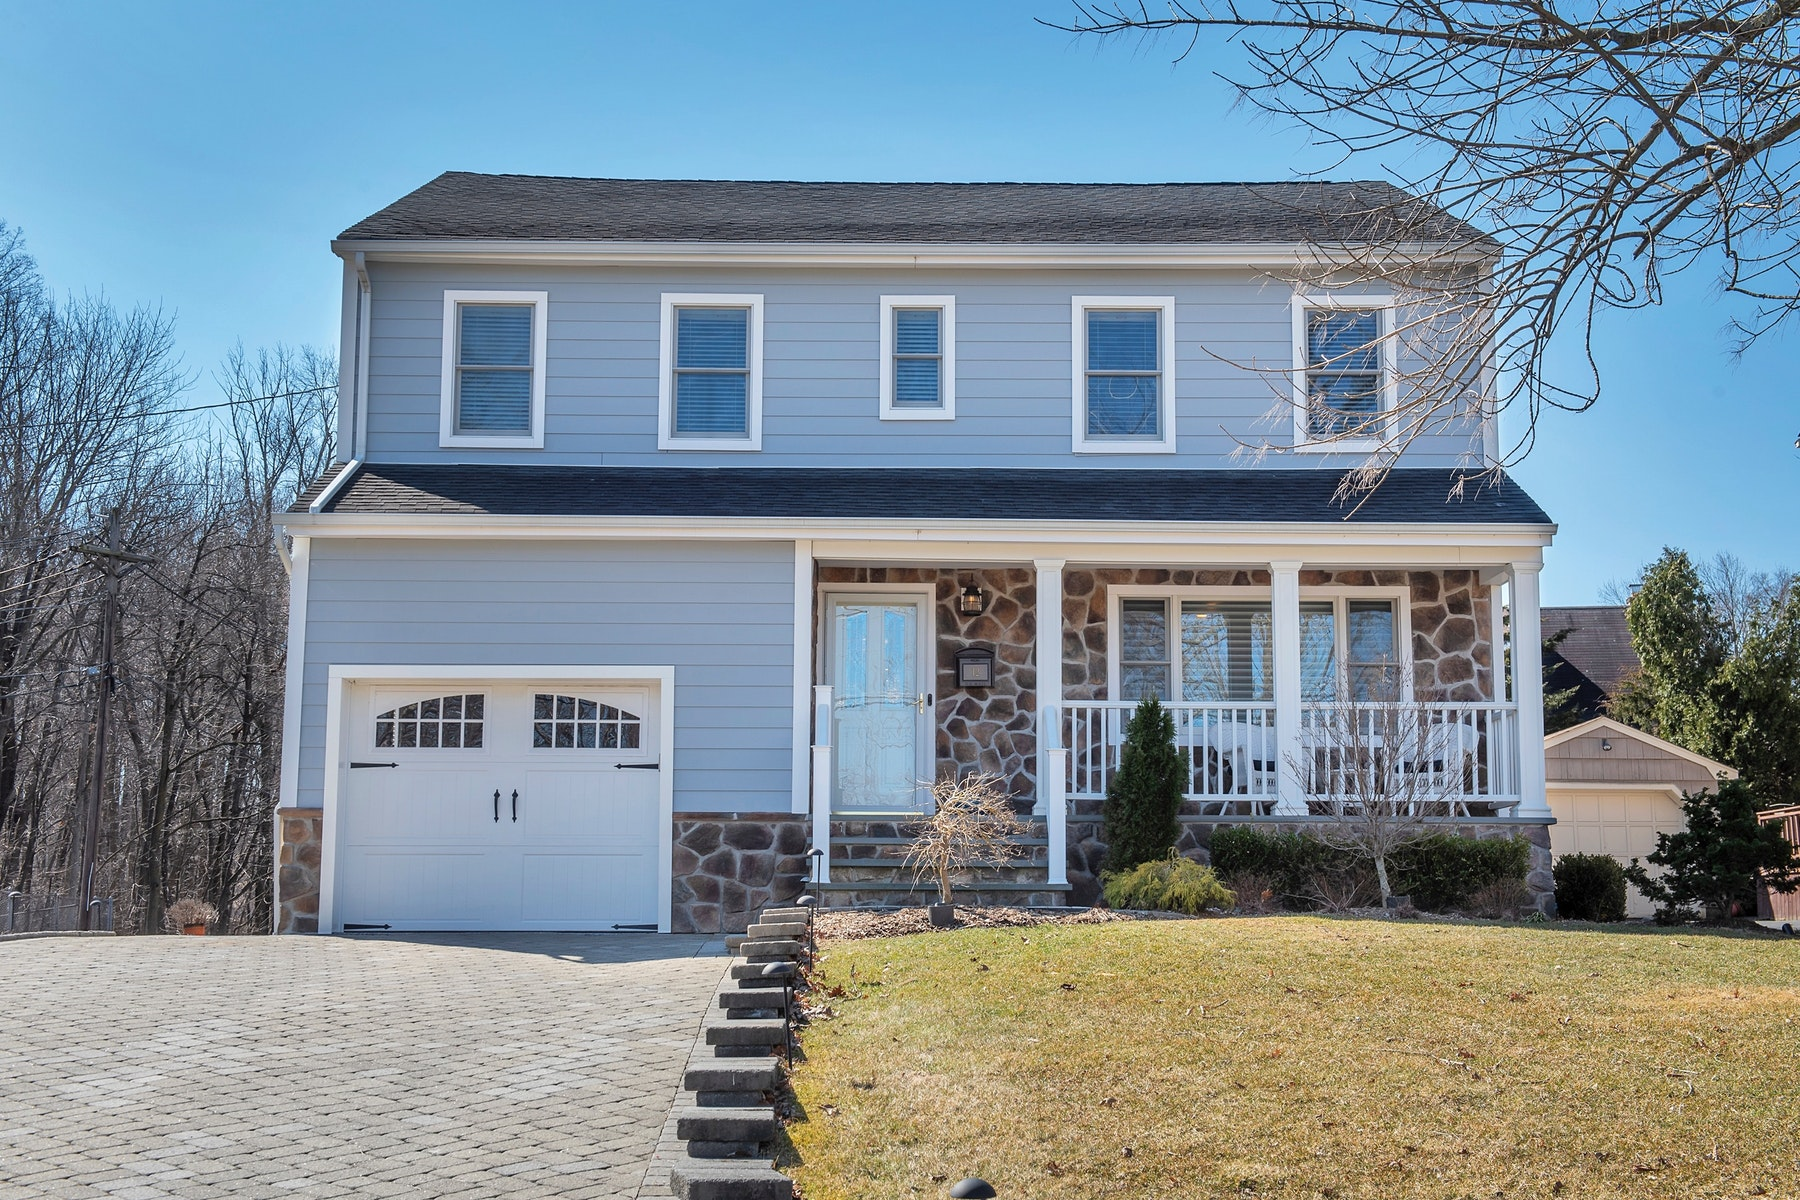 Single Family Home for Sale at Pristine Colonial 12 Cedar Street, West Caldwell, New Jersey 07006 United States